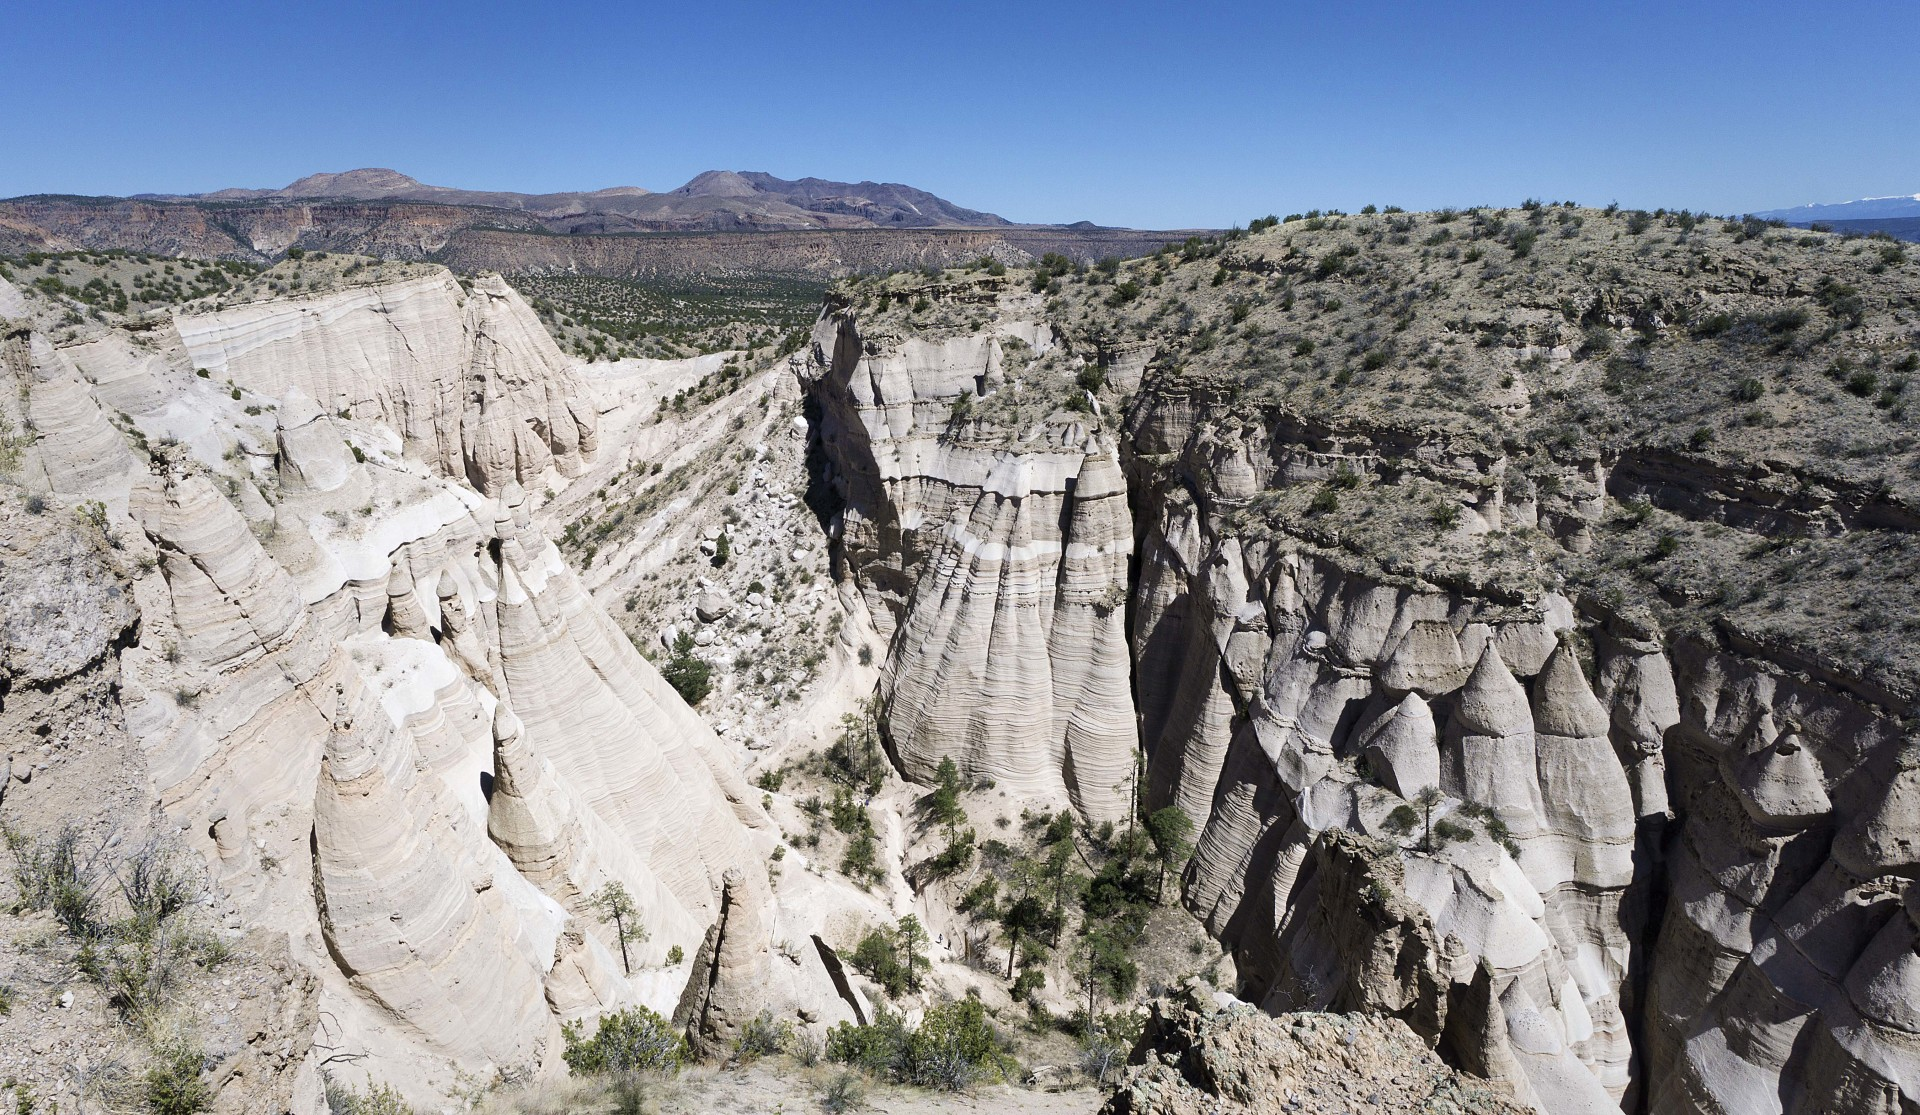 near the end of the main trail in the Kasha-Katuwe Tent Rocks National Monument park